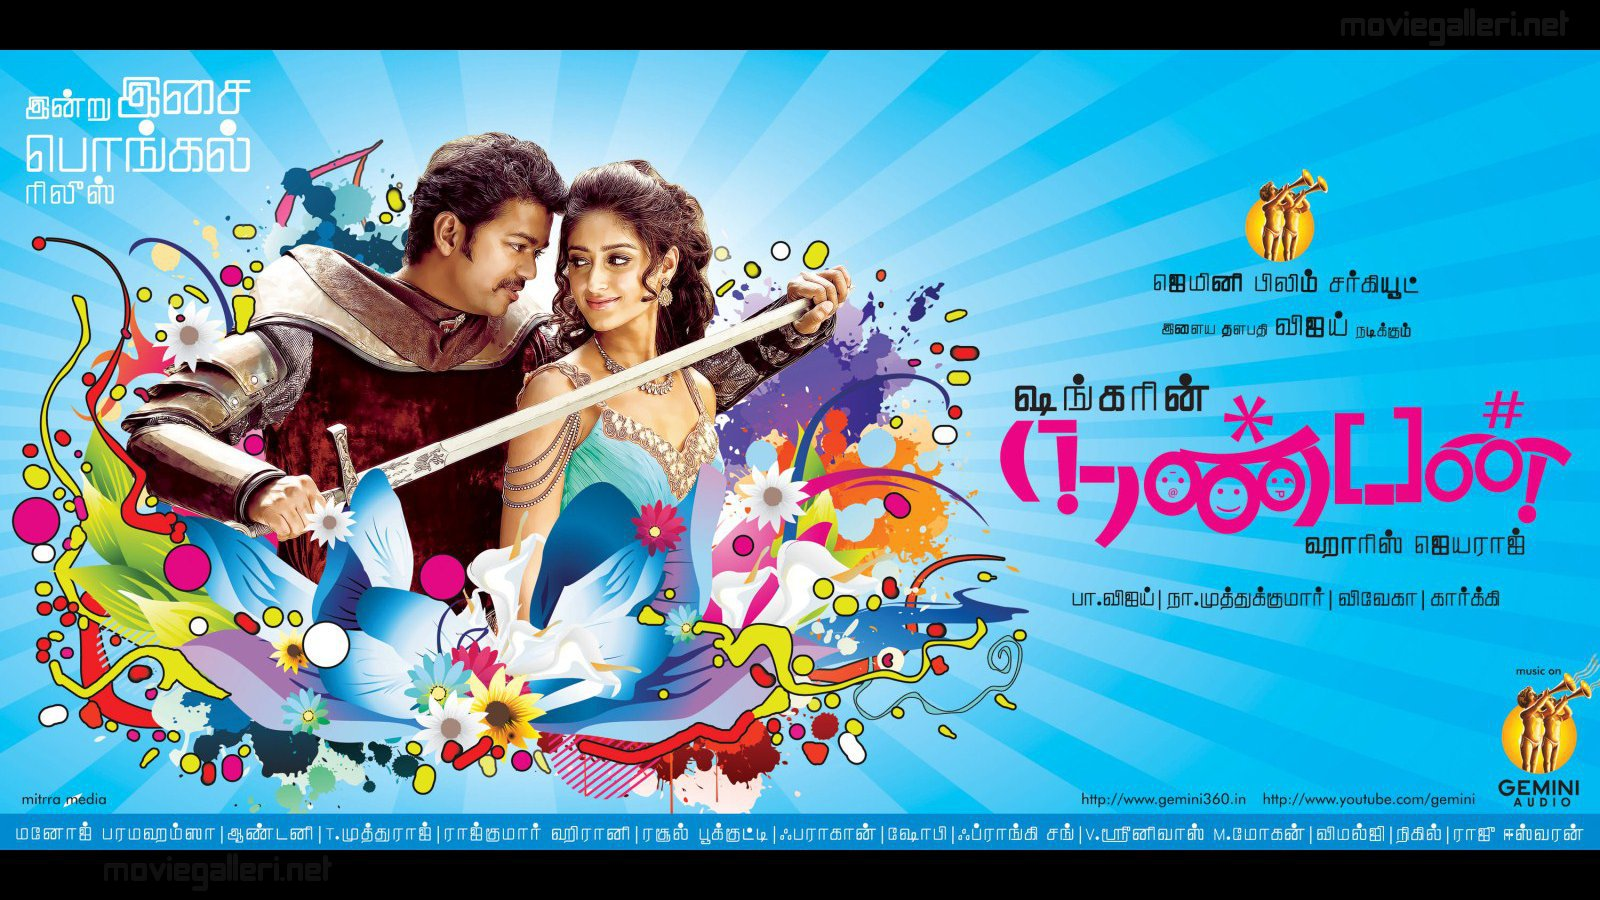 Nanban Tamil Movie Today - ASIANET MOVIES on Intelsat 17 at 66.0°E